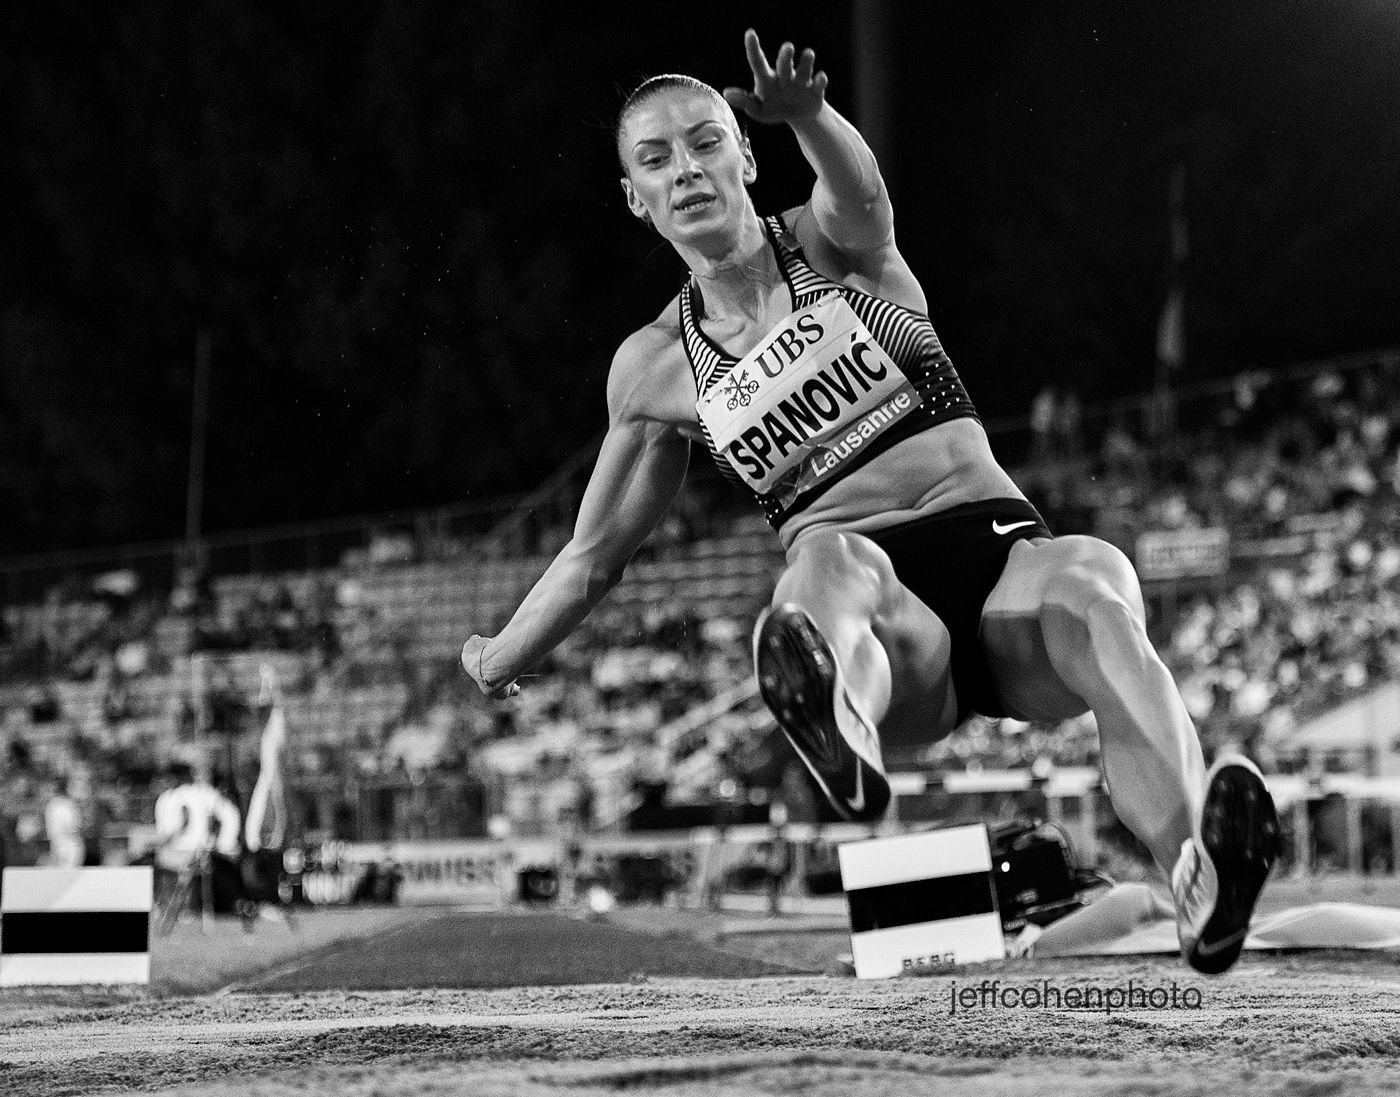 1r2016_athletissima_lausanne_spanovic_bw_ljw_jeff_cohen_photo_1966_web.jpg